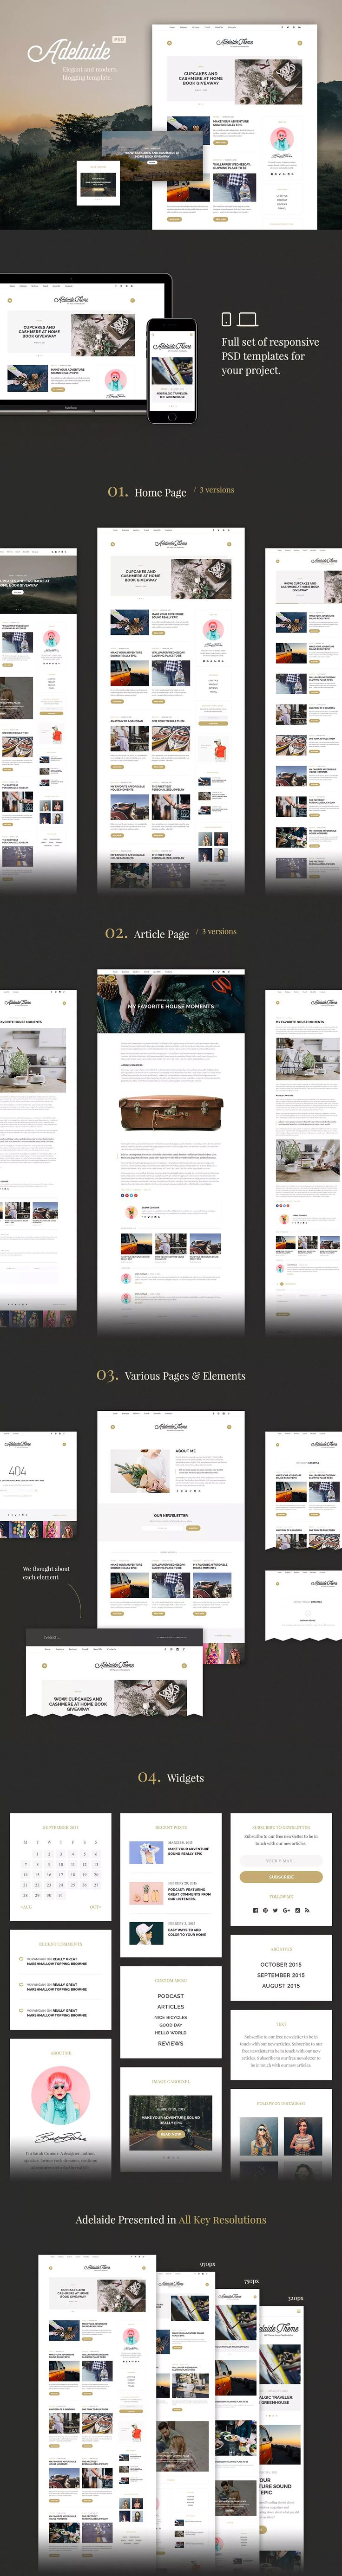 164 best website templates images on pinterest